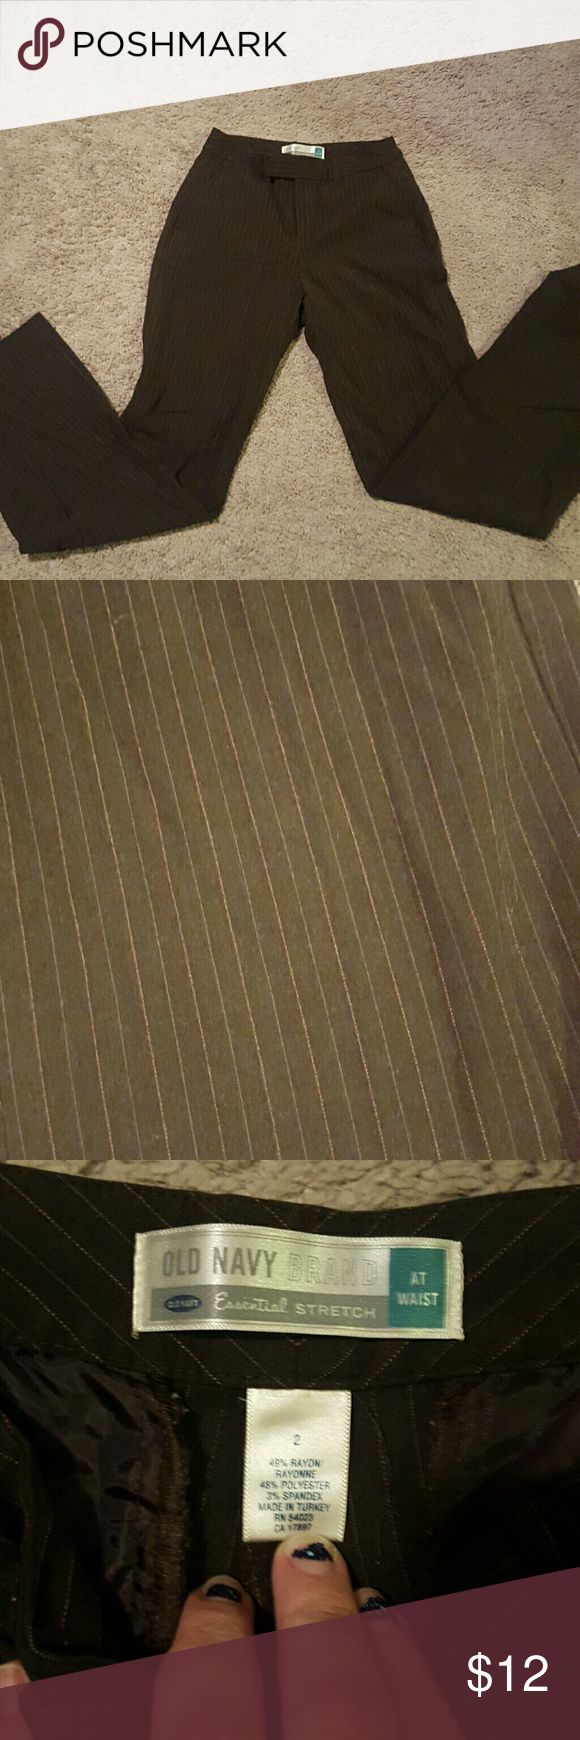 Brown old navy dress pants Size 2 old navy dress pants. Brown with pink and grey pinstripes. Good used condition Pants Trousers